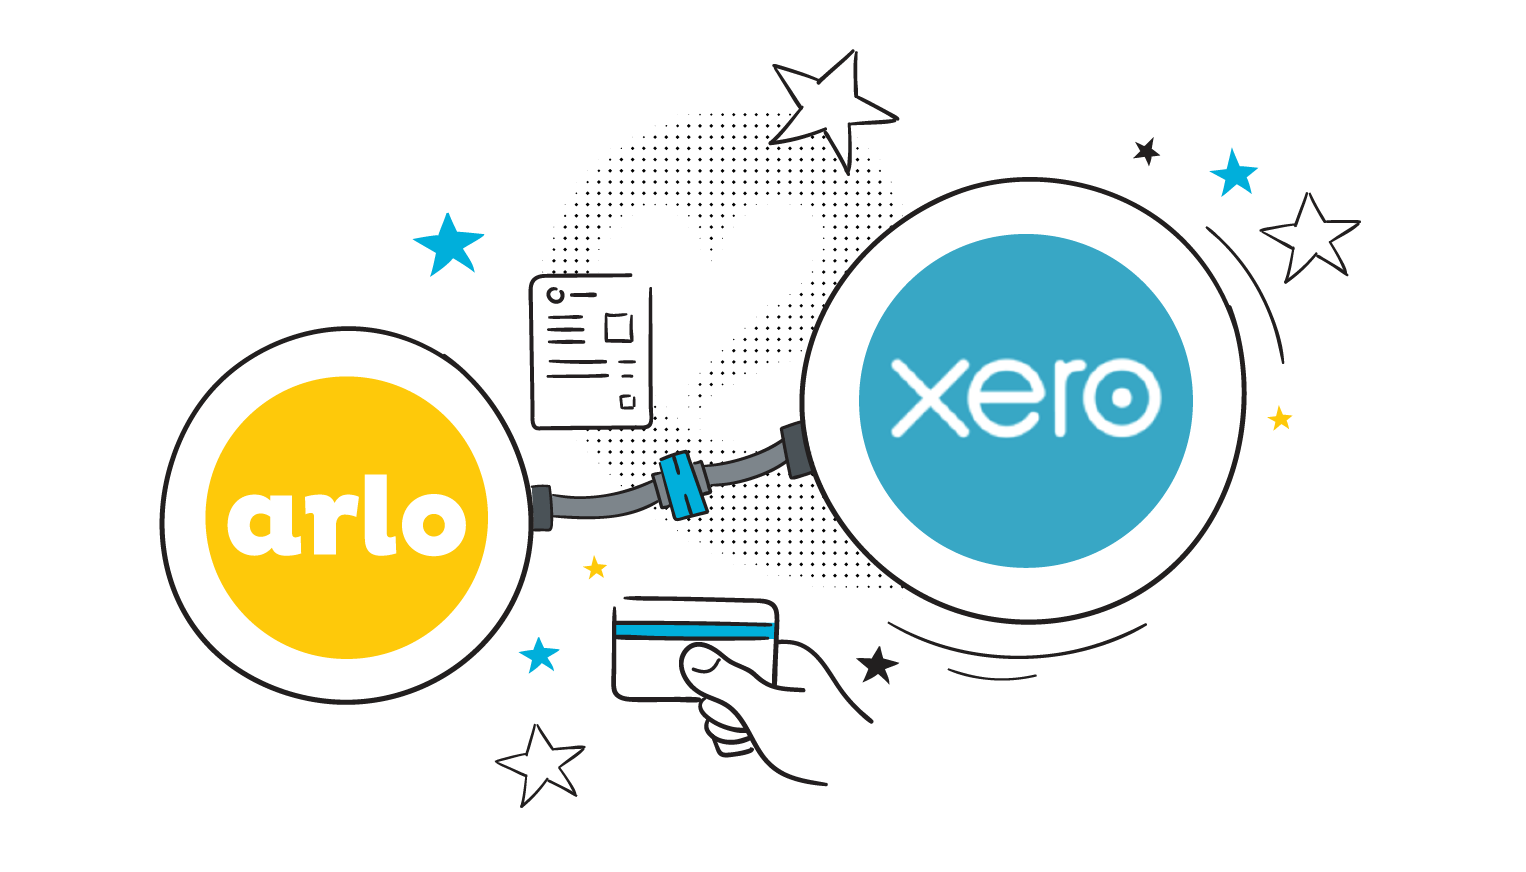 Arlo integrates with Xero Accounting Software